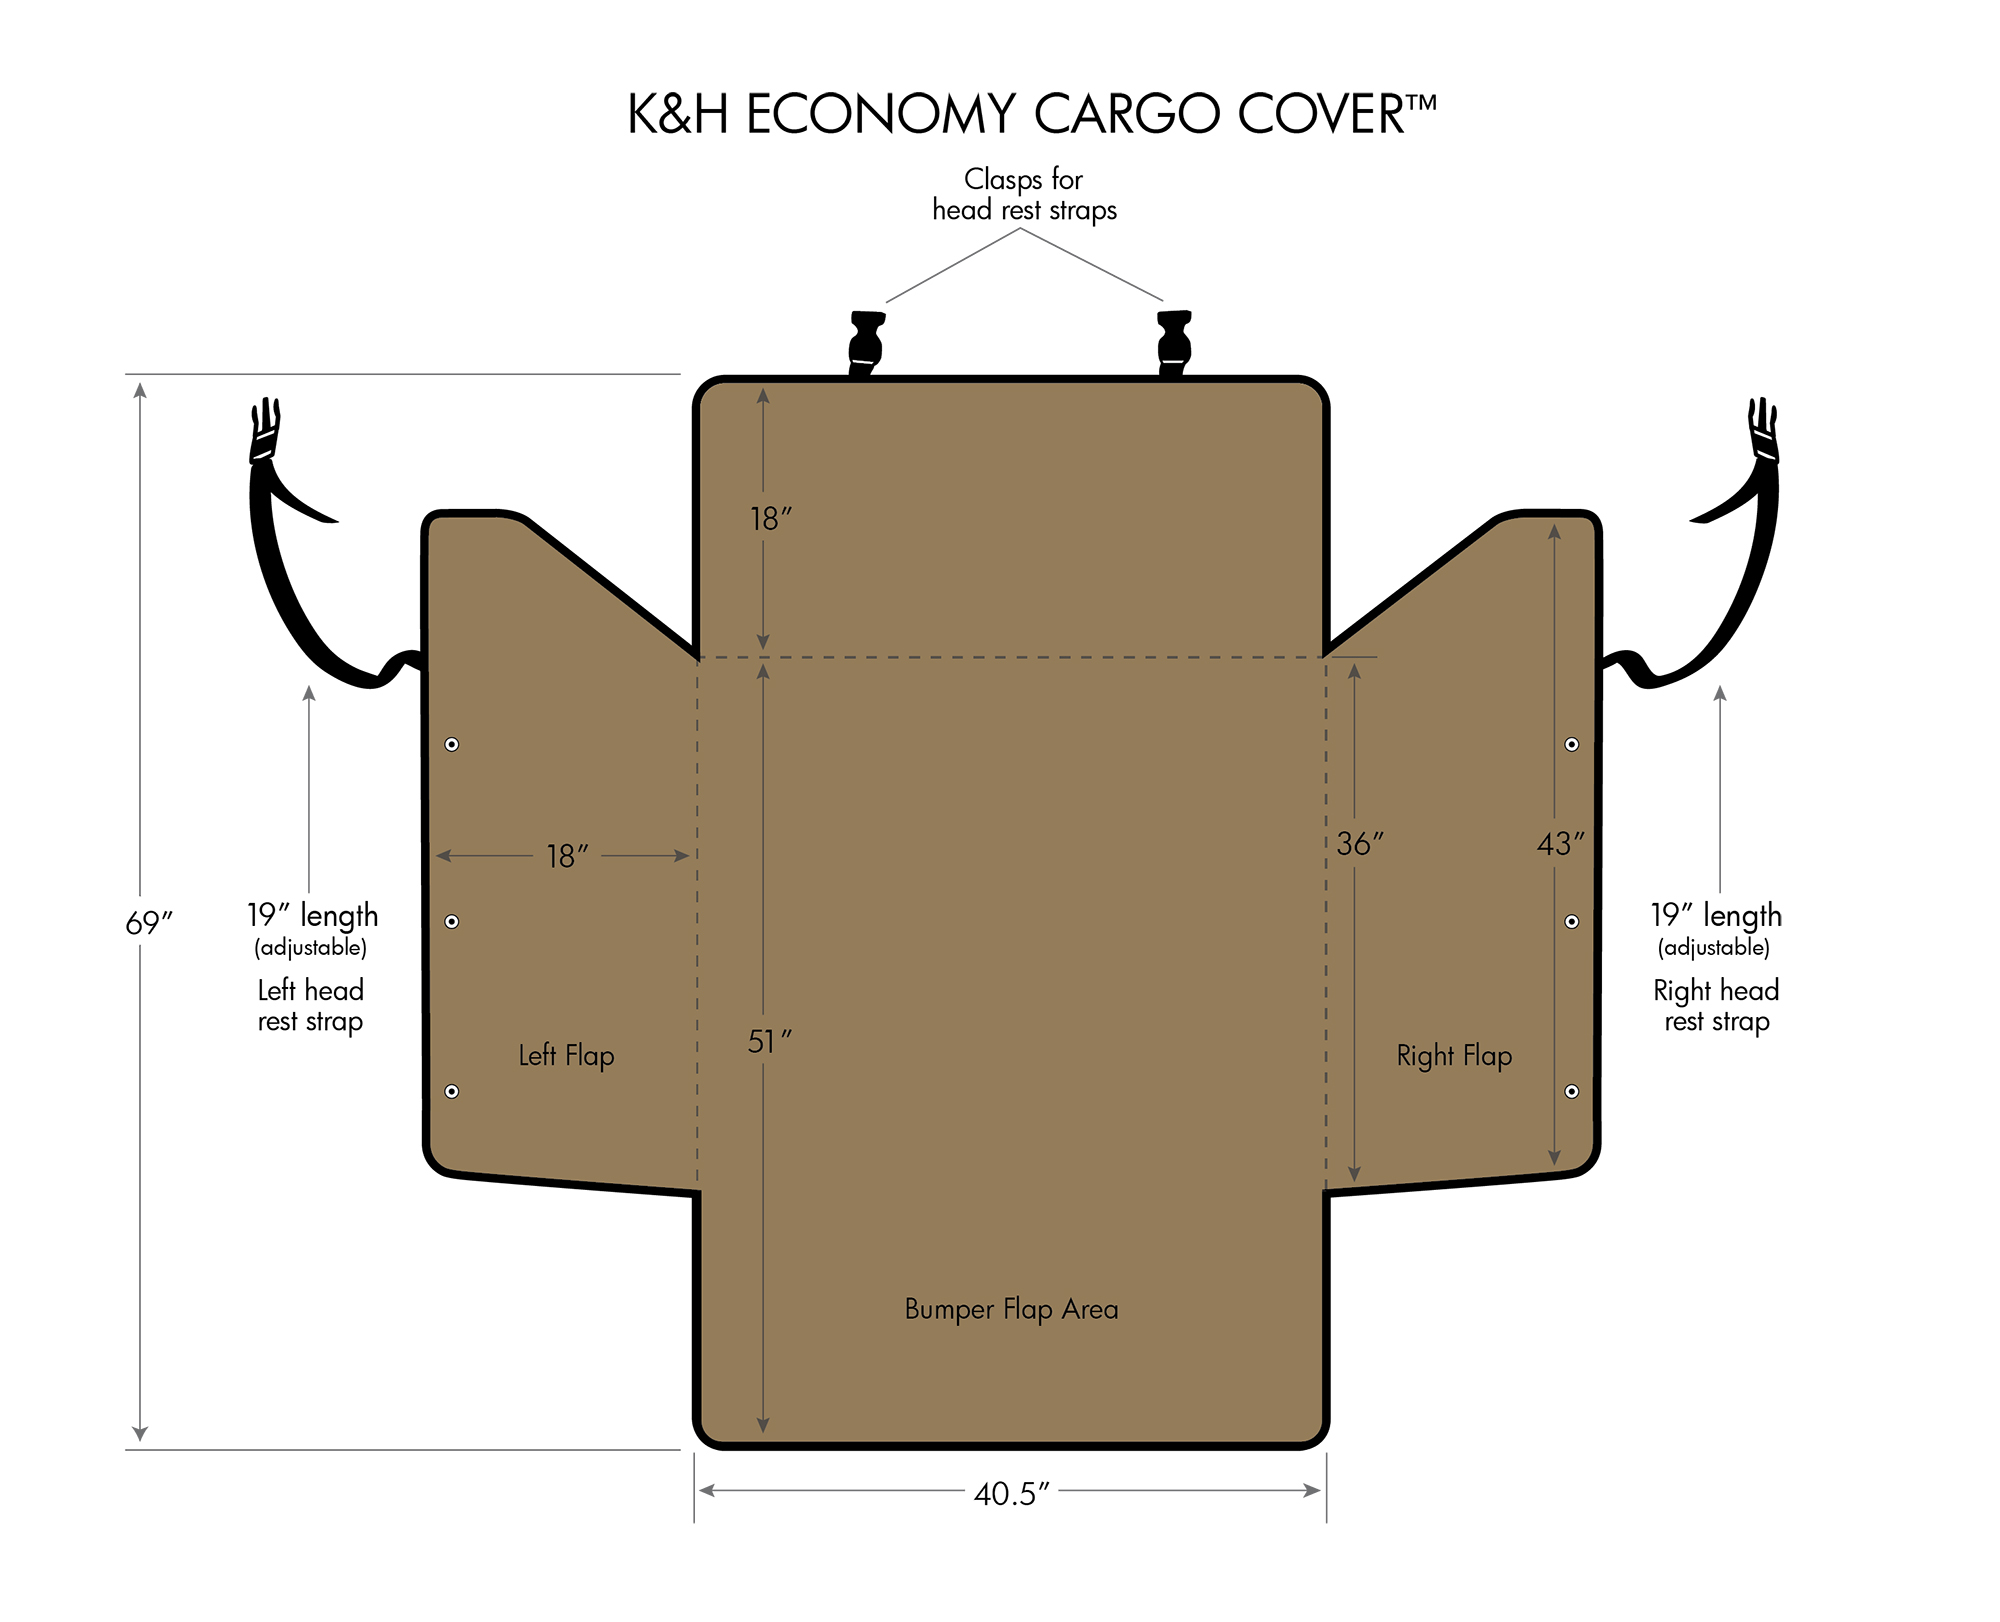 K&H Cargo Cover dimensions